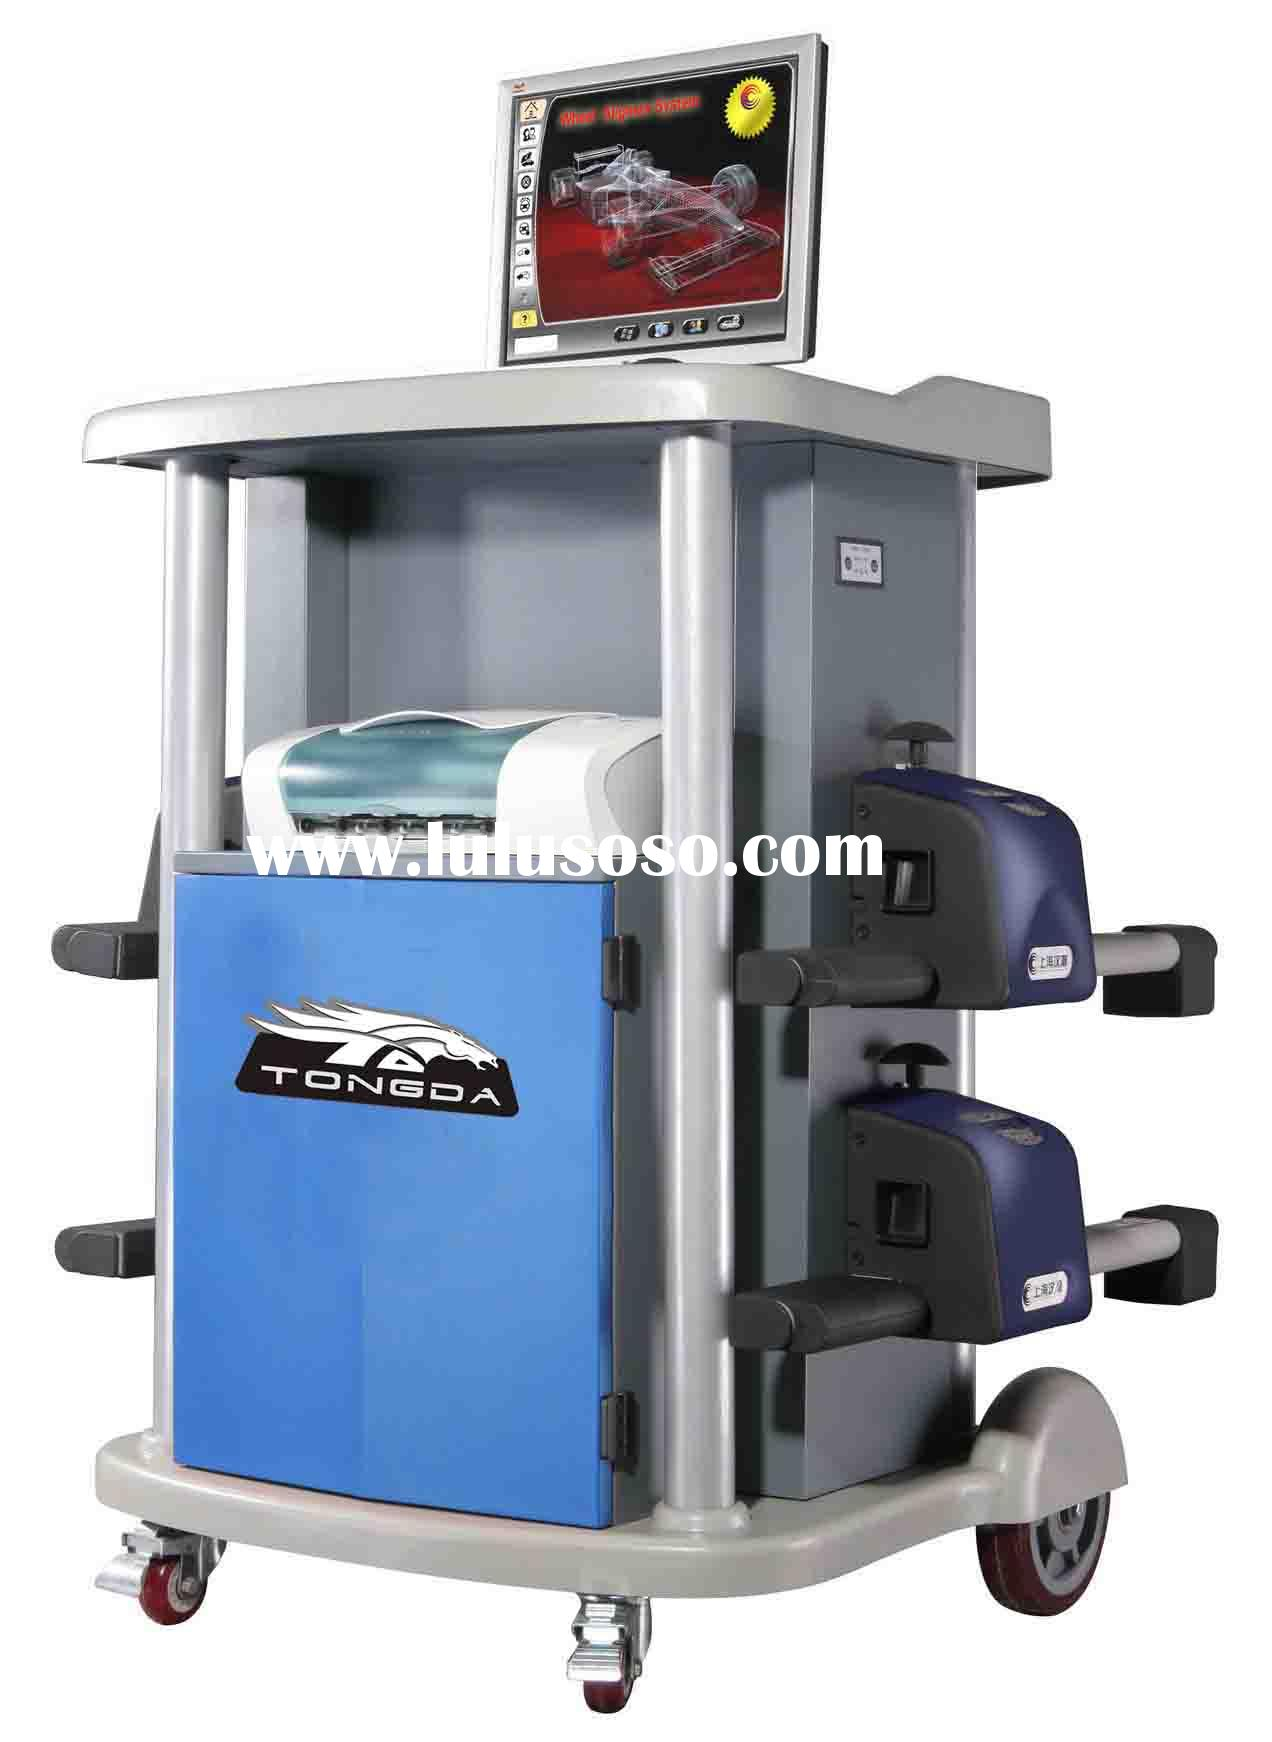 sell wheel alignment,ccd wheel alignment,4-wheel alignment,laser wheel alignment, truck alignment